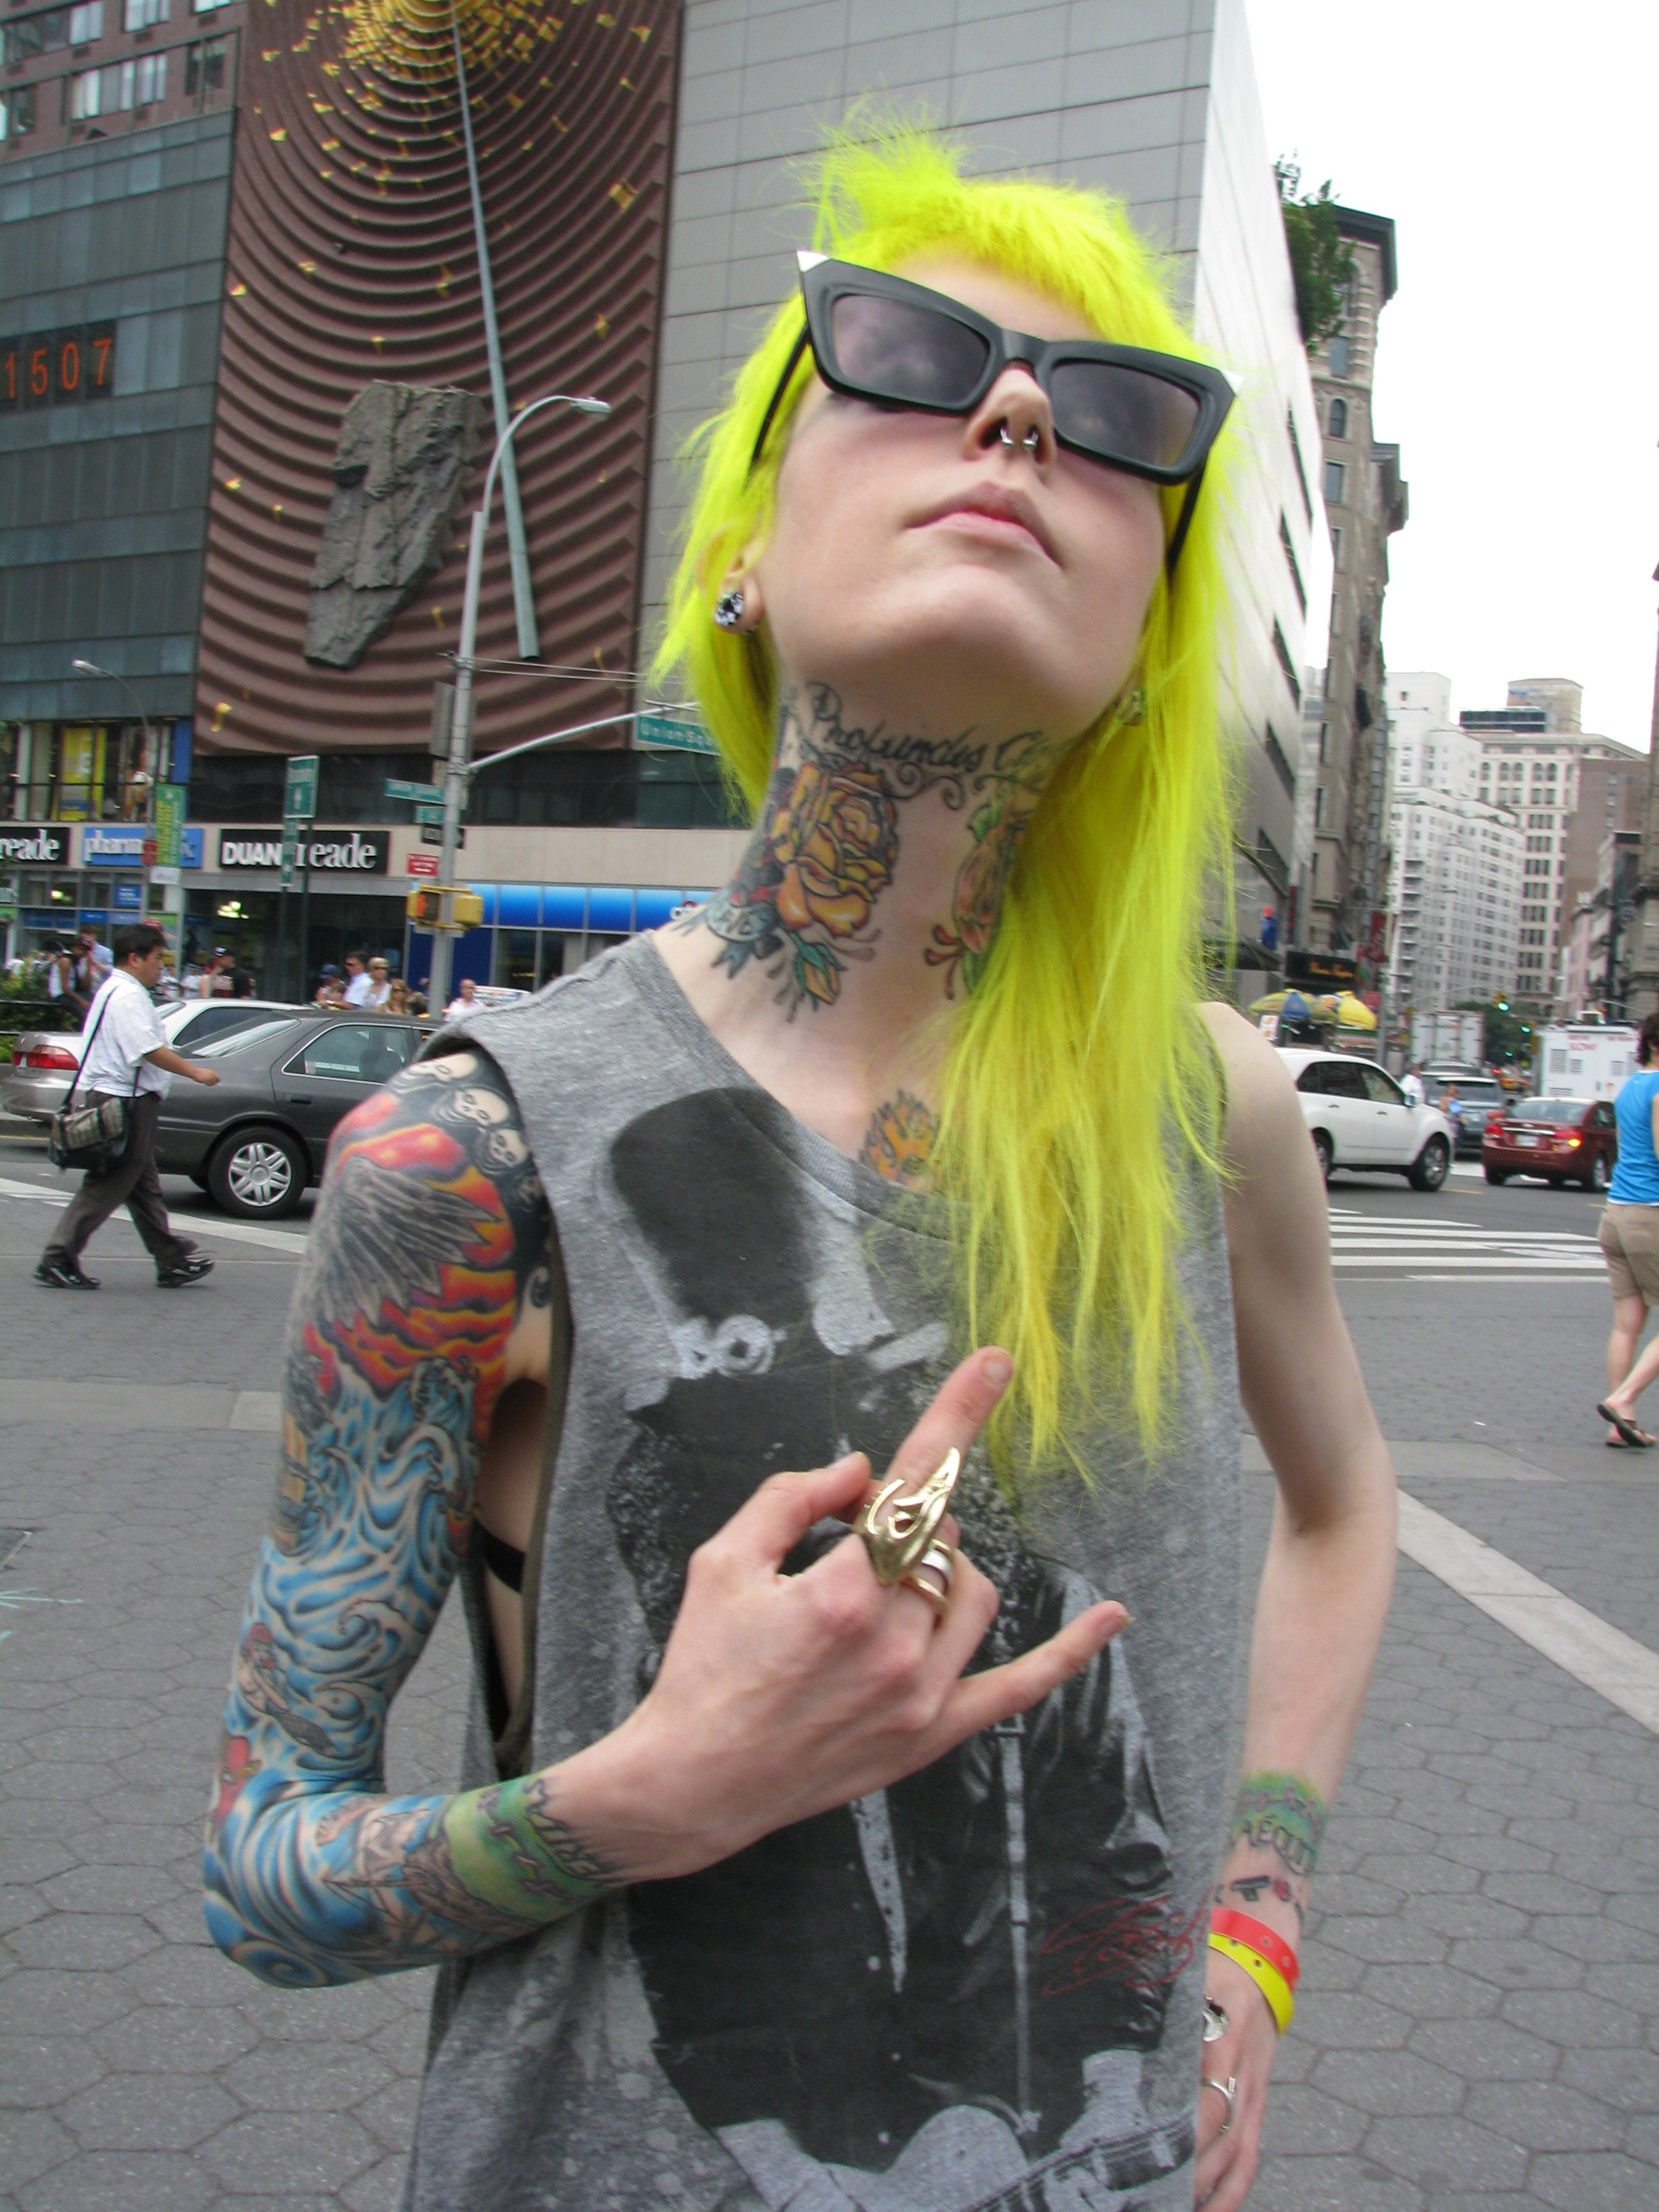 skinny punk tattooed girl with bright yellow hair